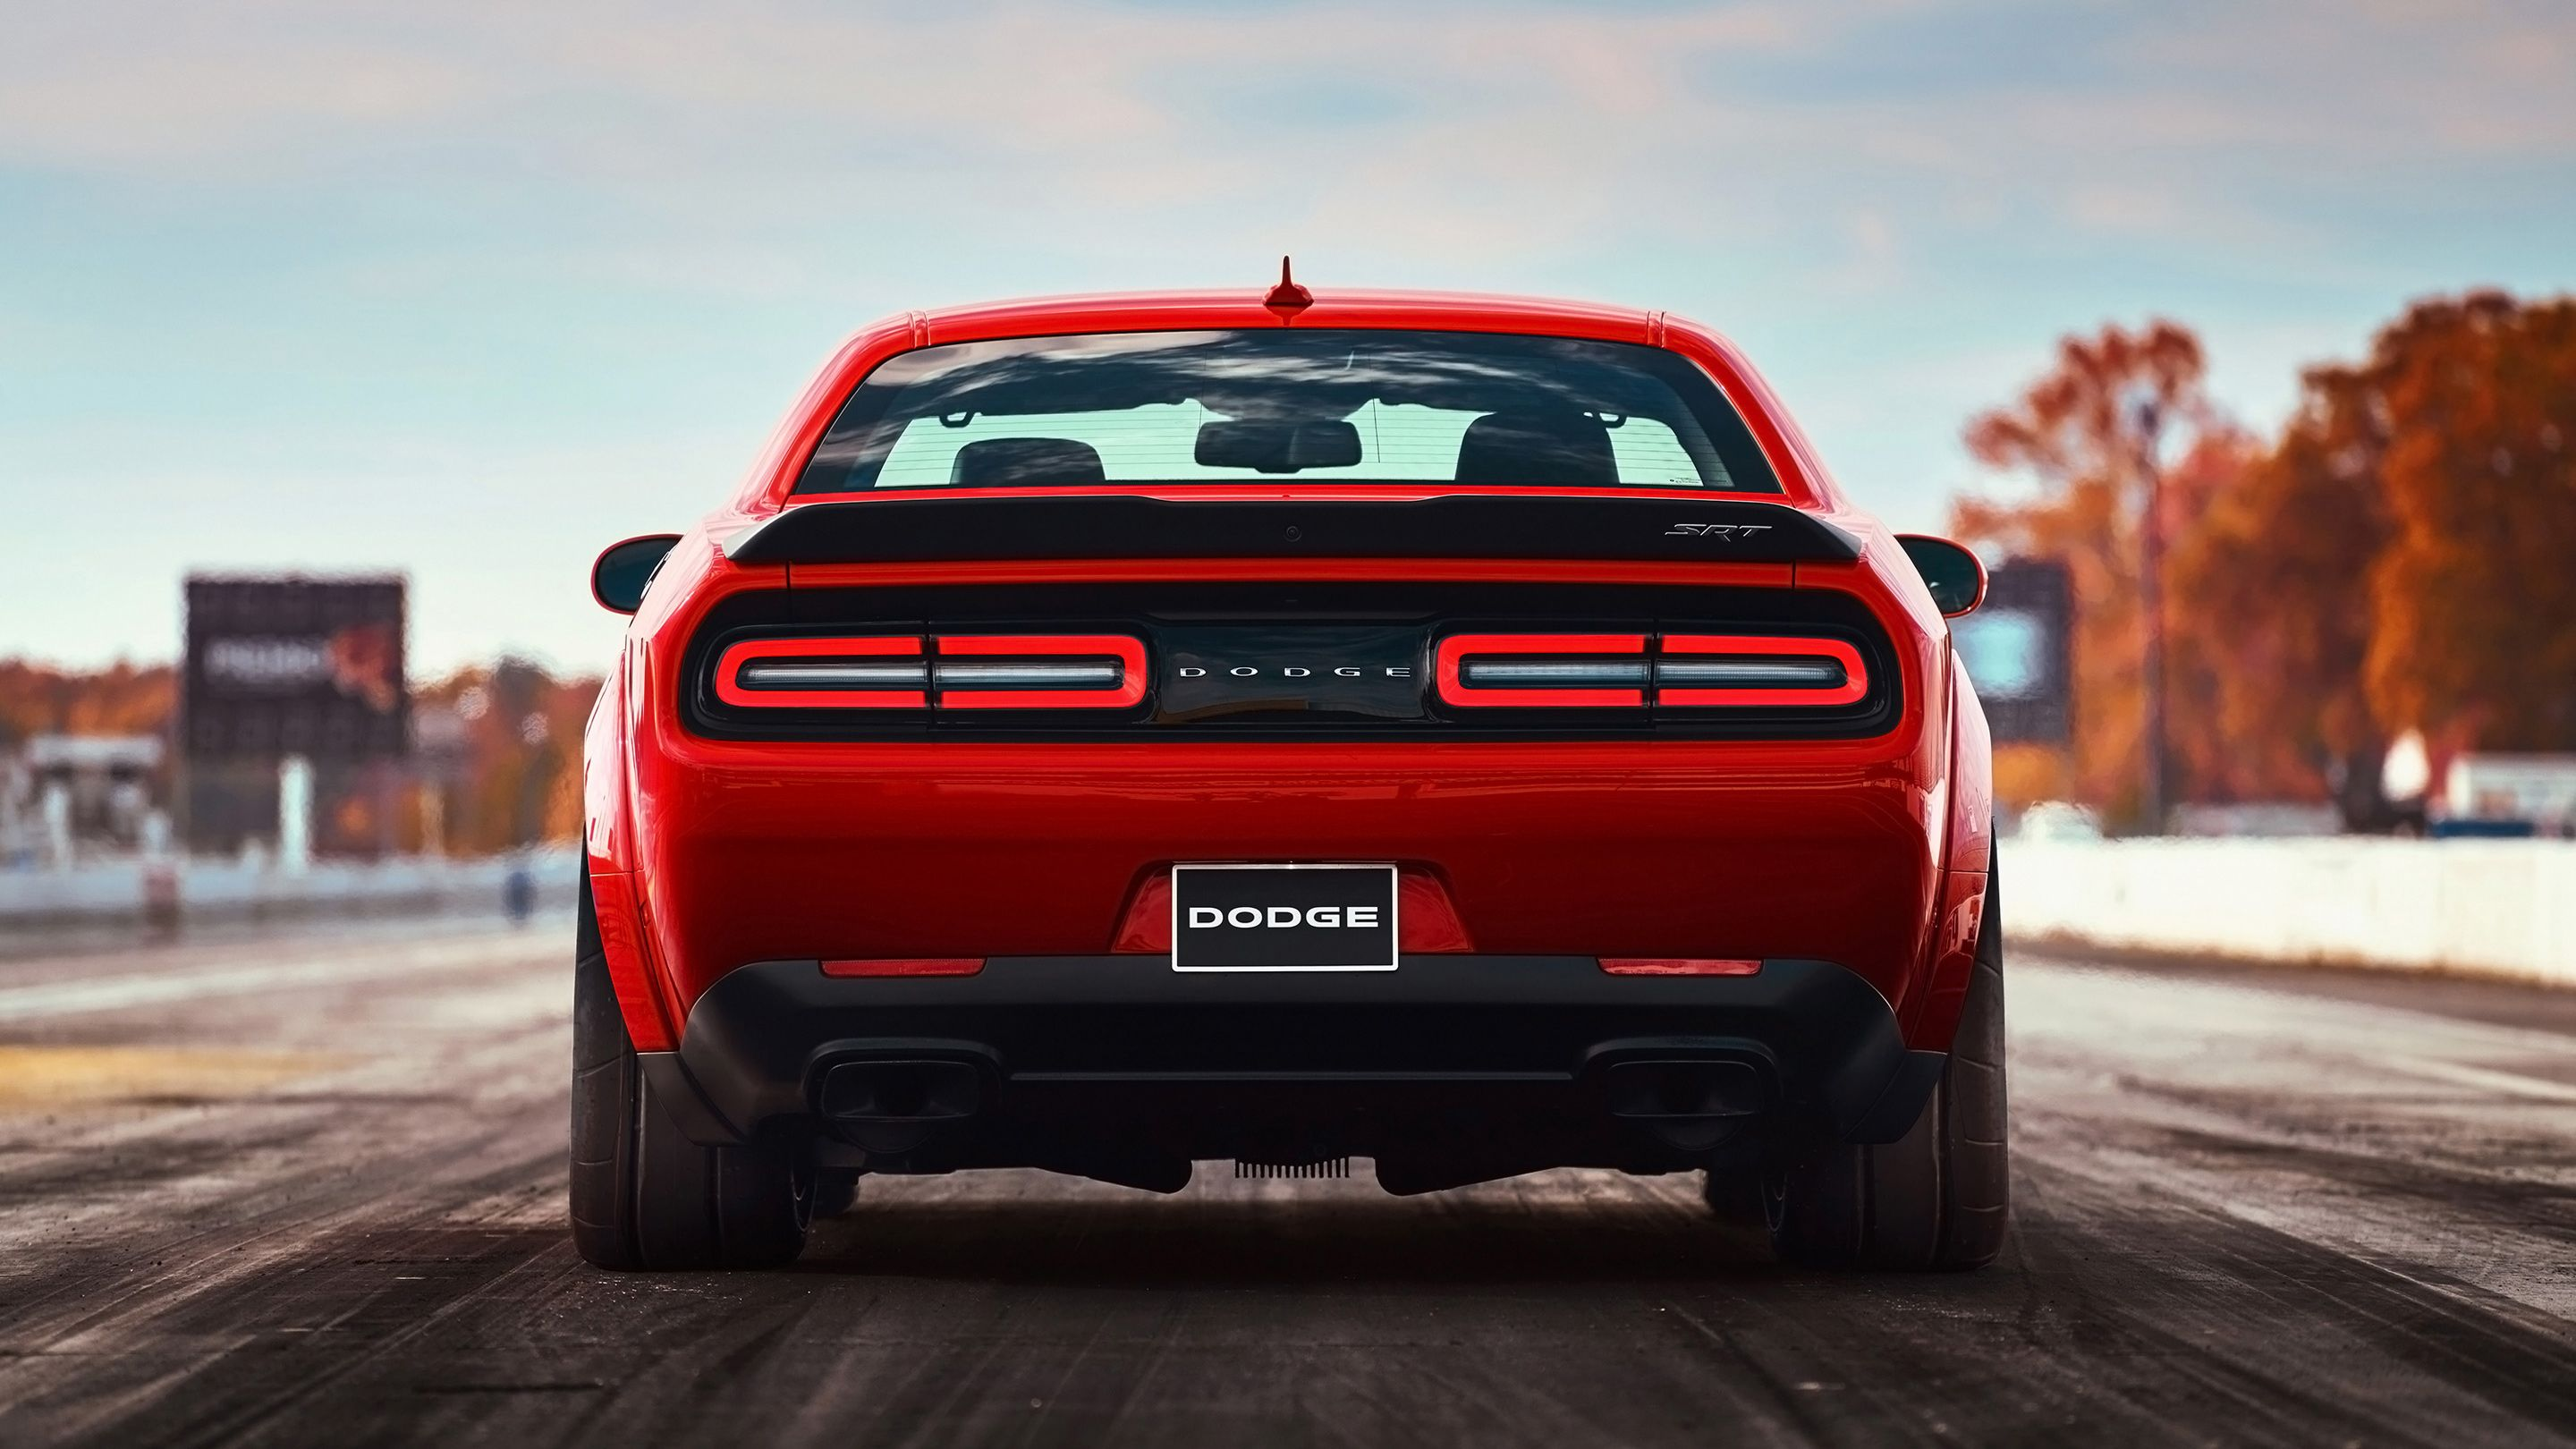 Dodge Demon Hd Wallpapers Background Images Photos